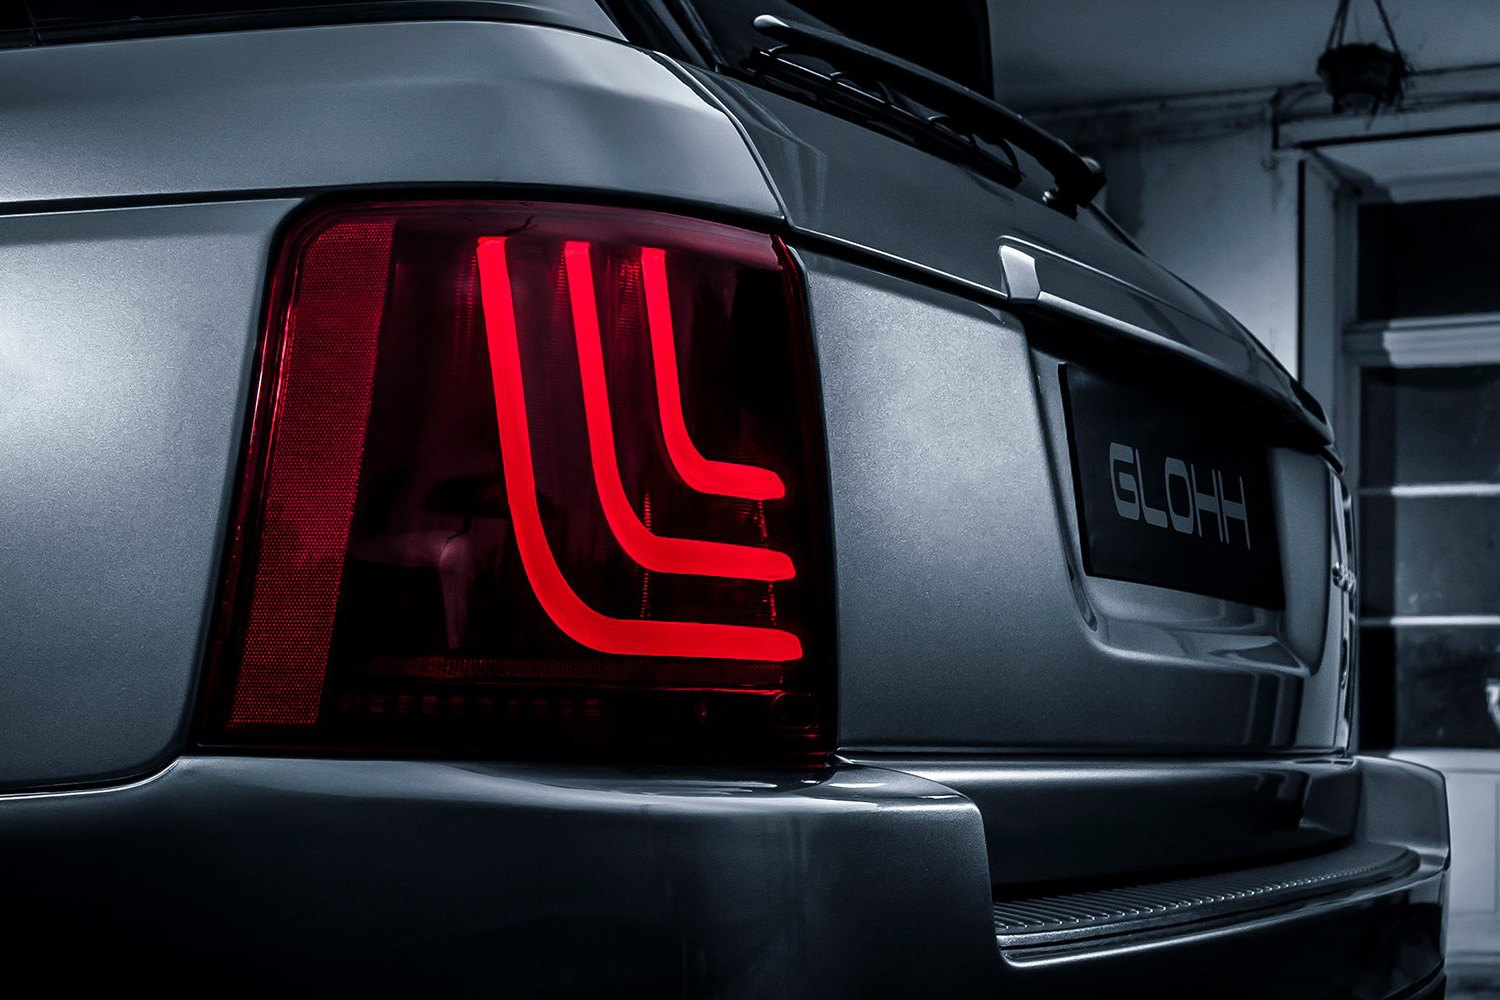 Installedglohh Gl 3 Dynamic Red Fiber Optic Led Tail Lights